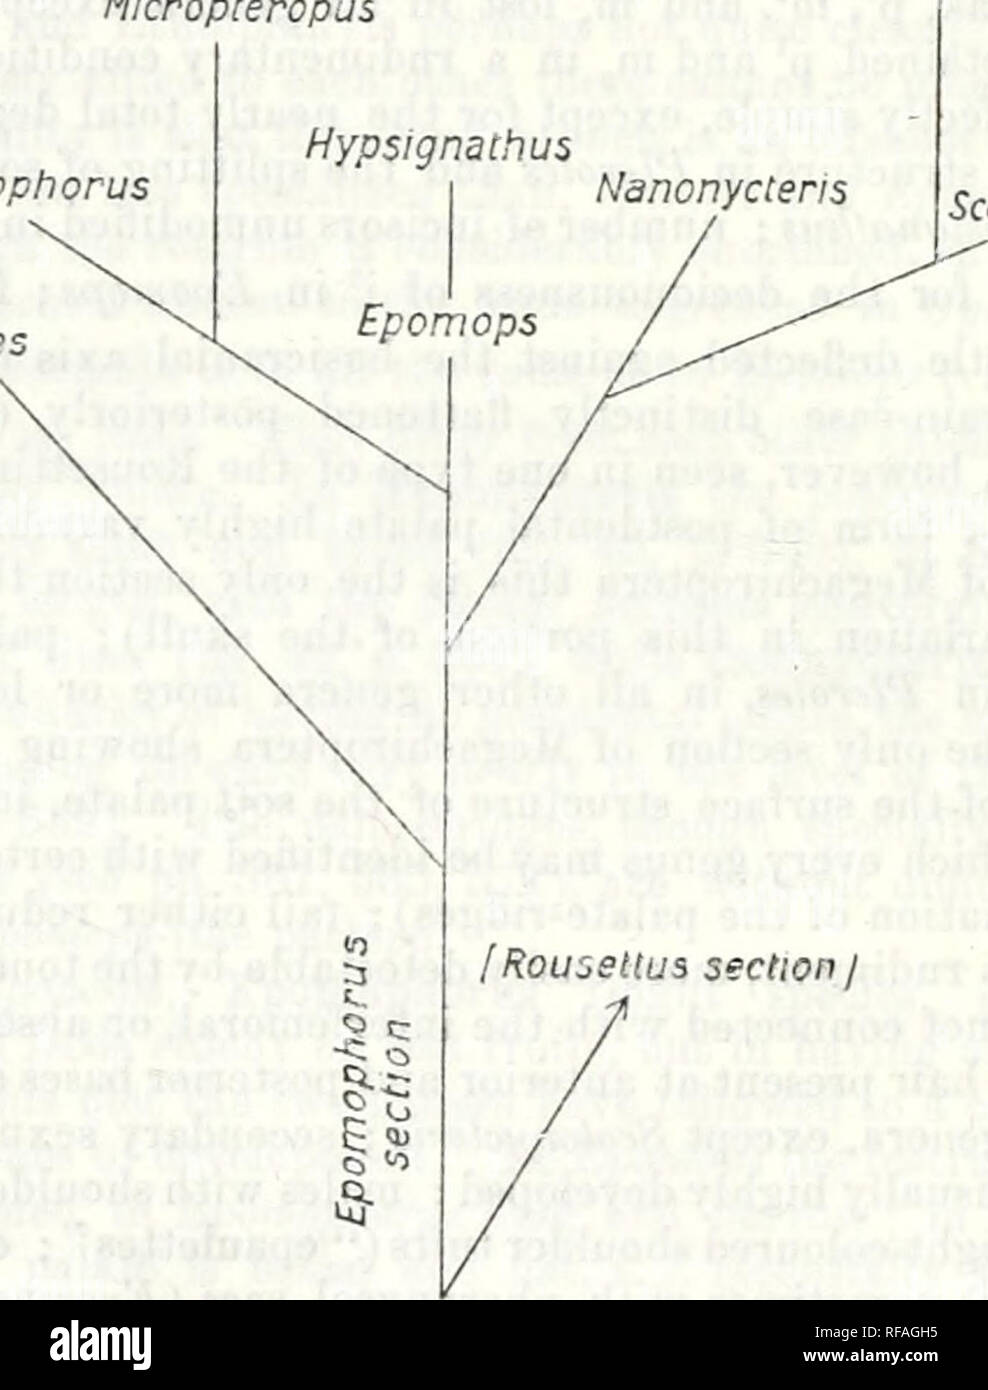 . Catalogue of the Chiroptera in the collection of the ... Museum. Ivi IXTEKRKLATIONS OF GKNERA. to, or iu the case of one or a tew species a little be3'oiid, Victoria ]Syun/,a, south to Angola. Eeiiguela, and Damaralaud. The genera of this section fall into three natural groups (branches, subsections) :—(1) The Epomops branch, tlie genera Plerotes, Epomops, and Hiiptsignathus (five species, six forms) : rostrum long, palate broad, postdental palate simple, at least some of the postdental palate-ridges unmoditied (except in Epomops dobsoni); (2) the Nanonycteris branch, including JS'anom/cteri - Stock Image